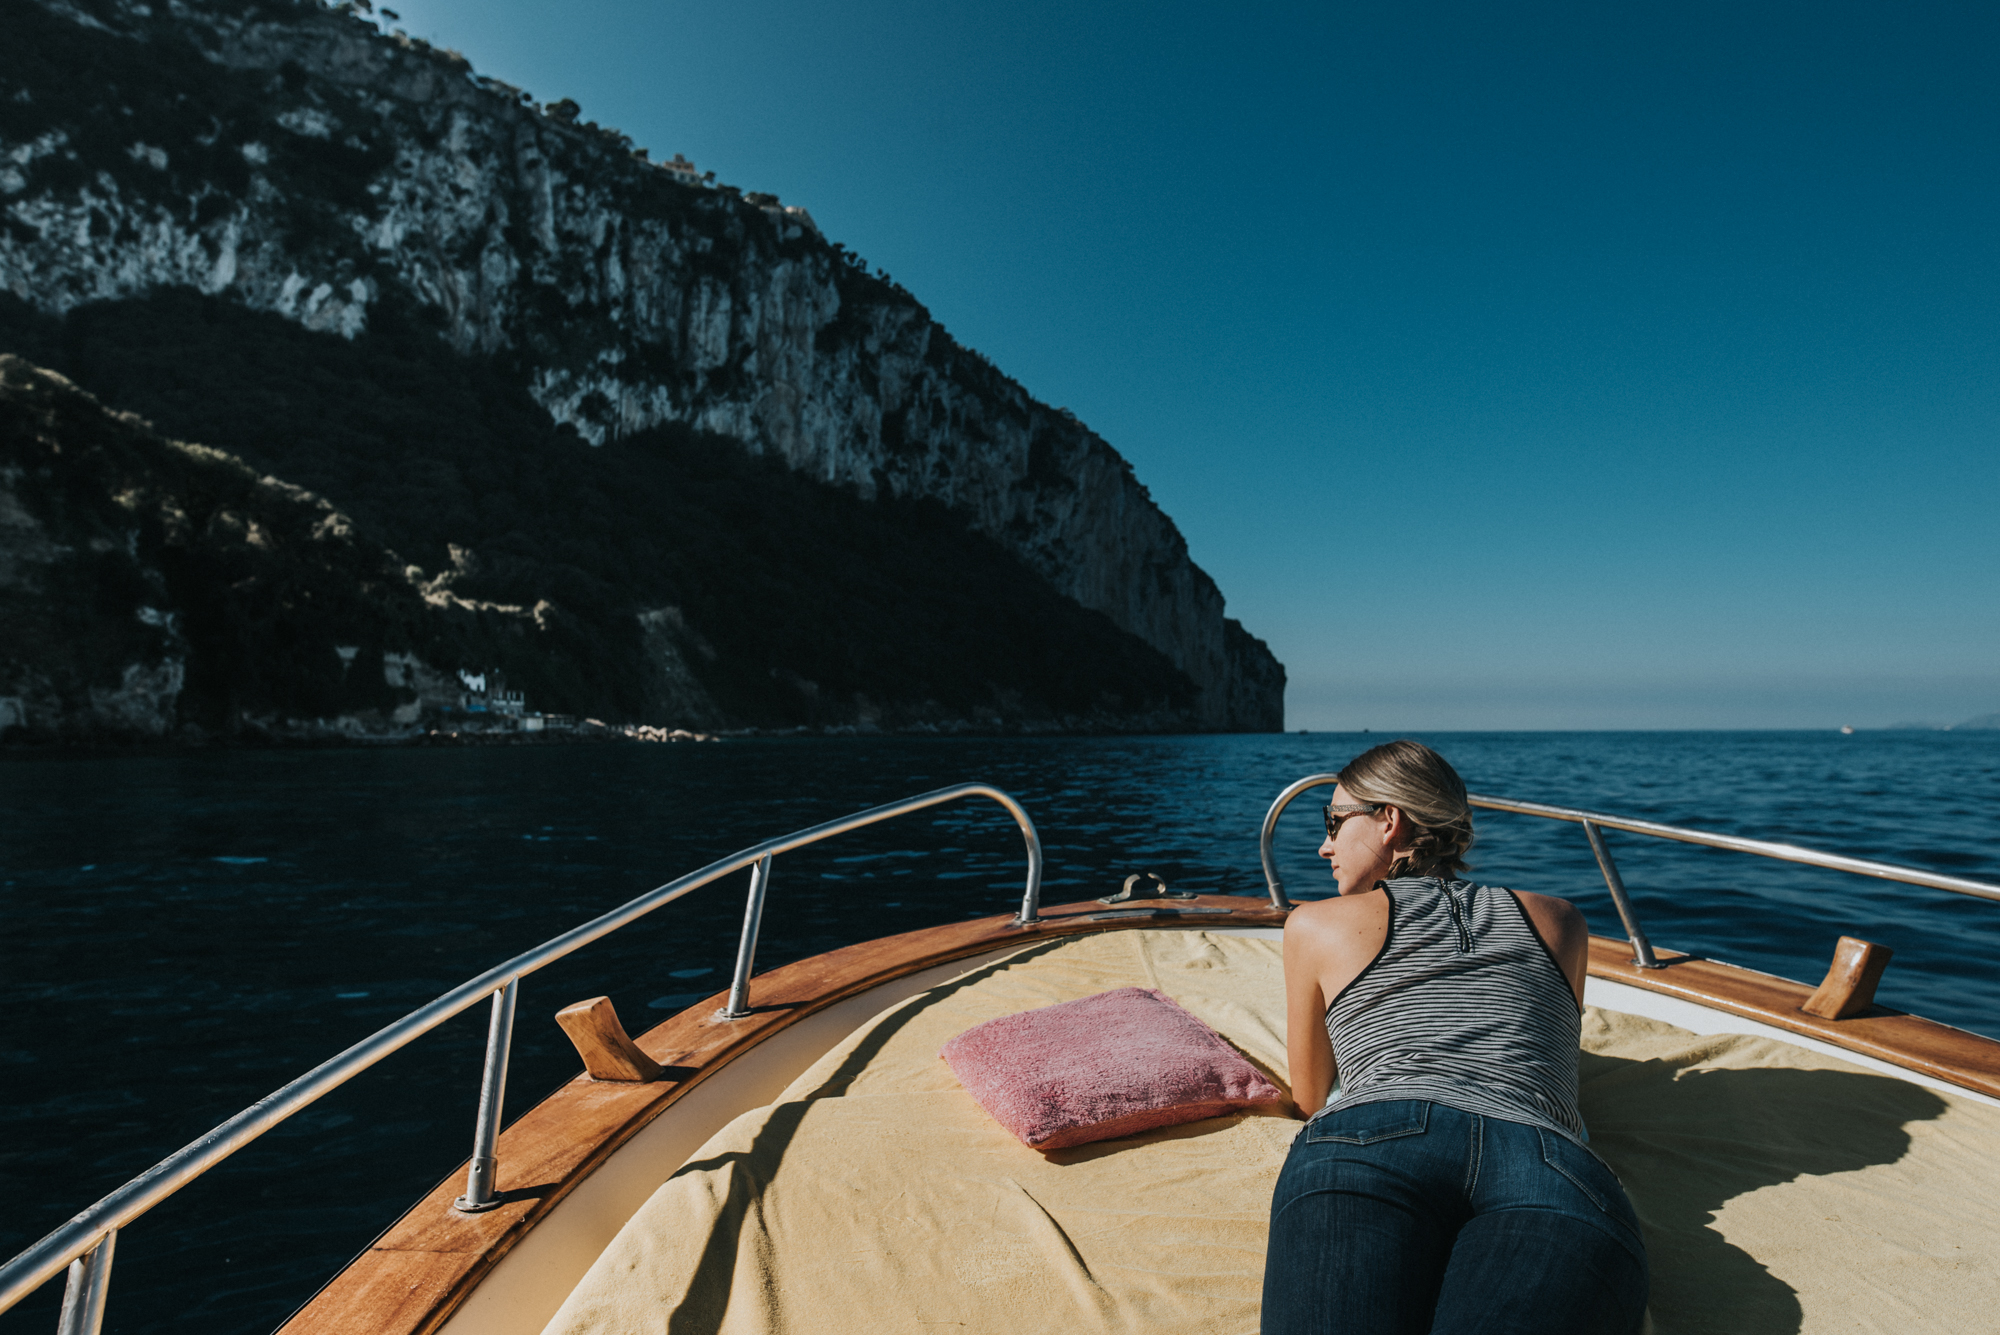 Backpacking trip to Positano Italy and Capri